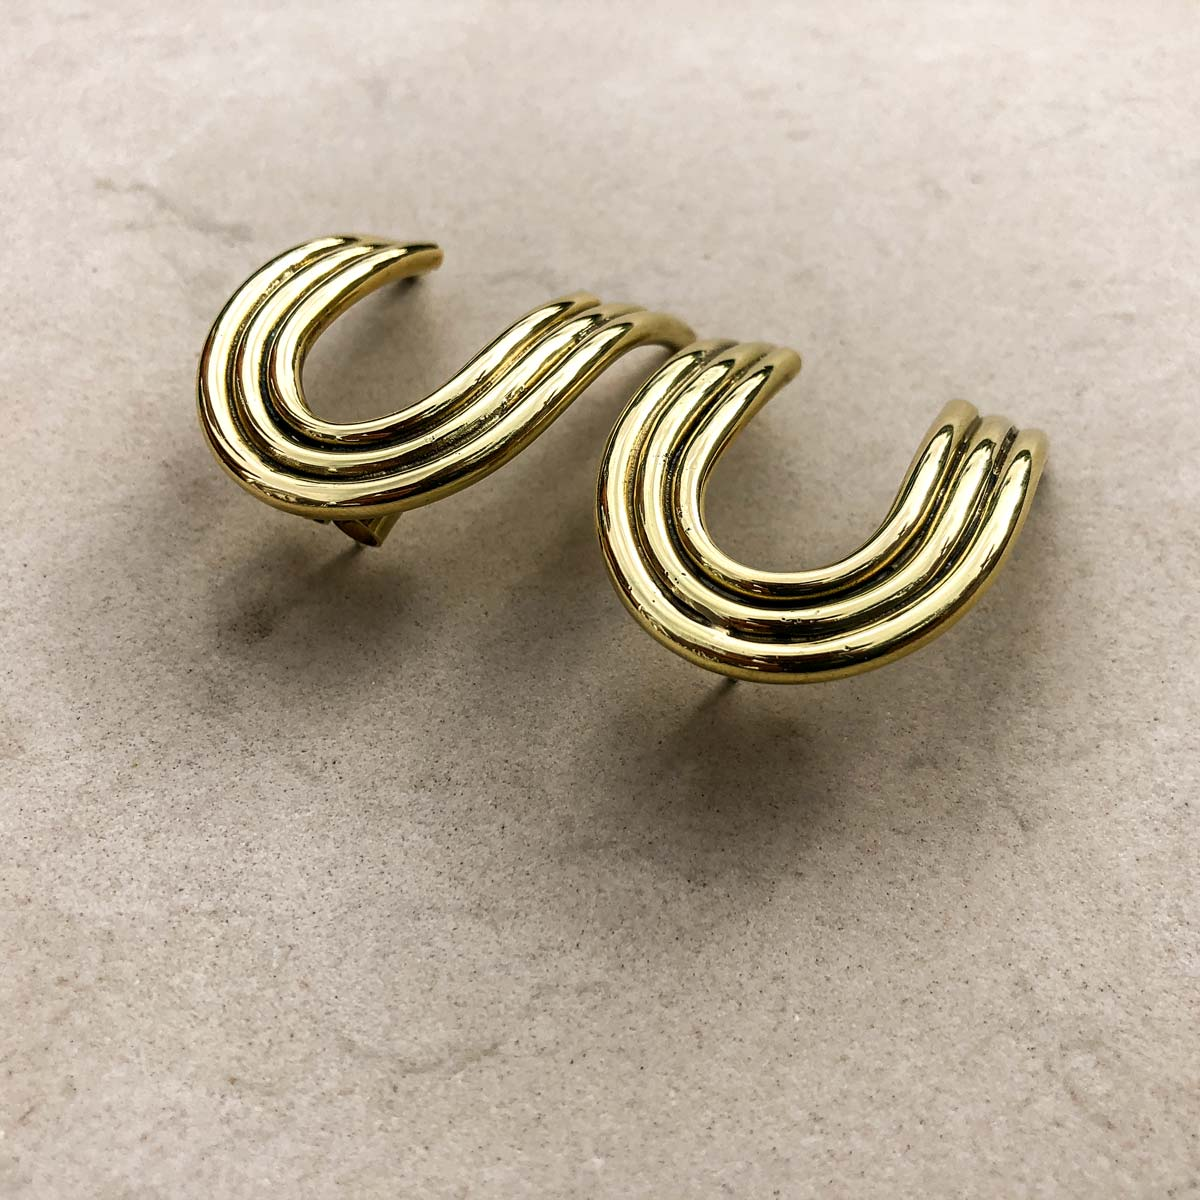 Ana Buendia gold plated minimal earrings handmade colombian jewelry